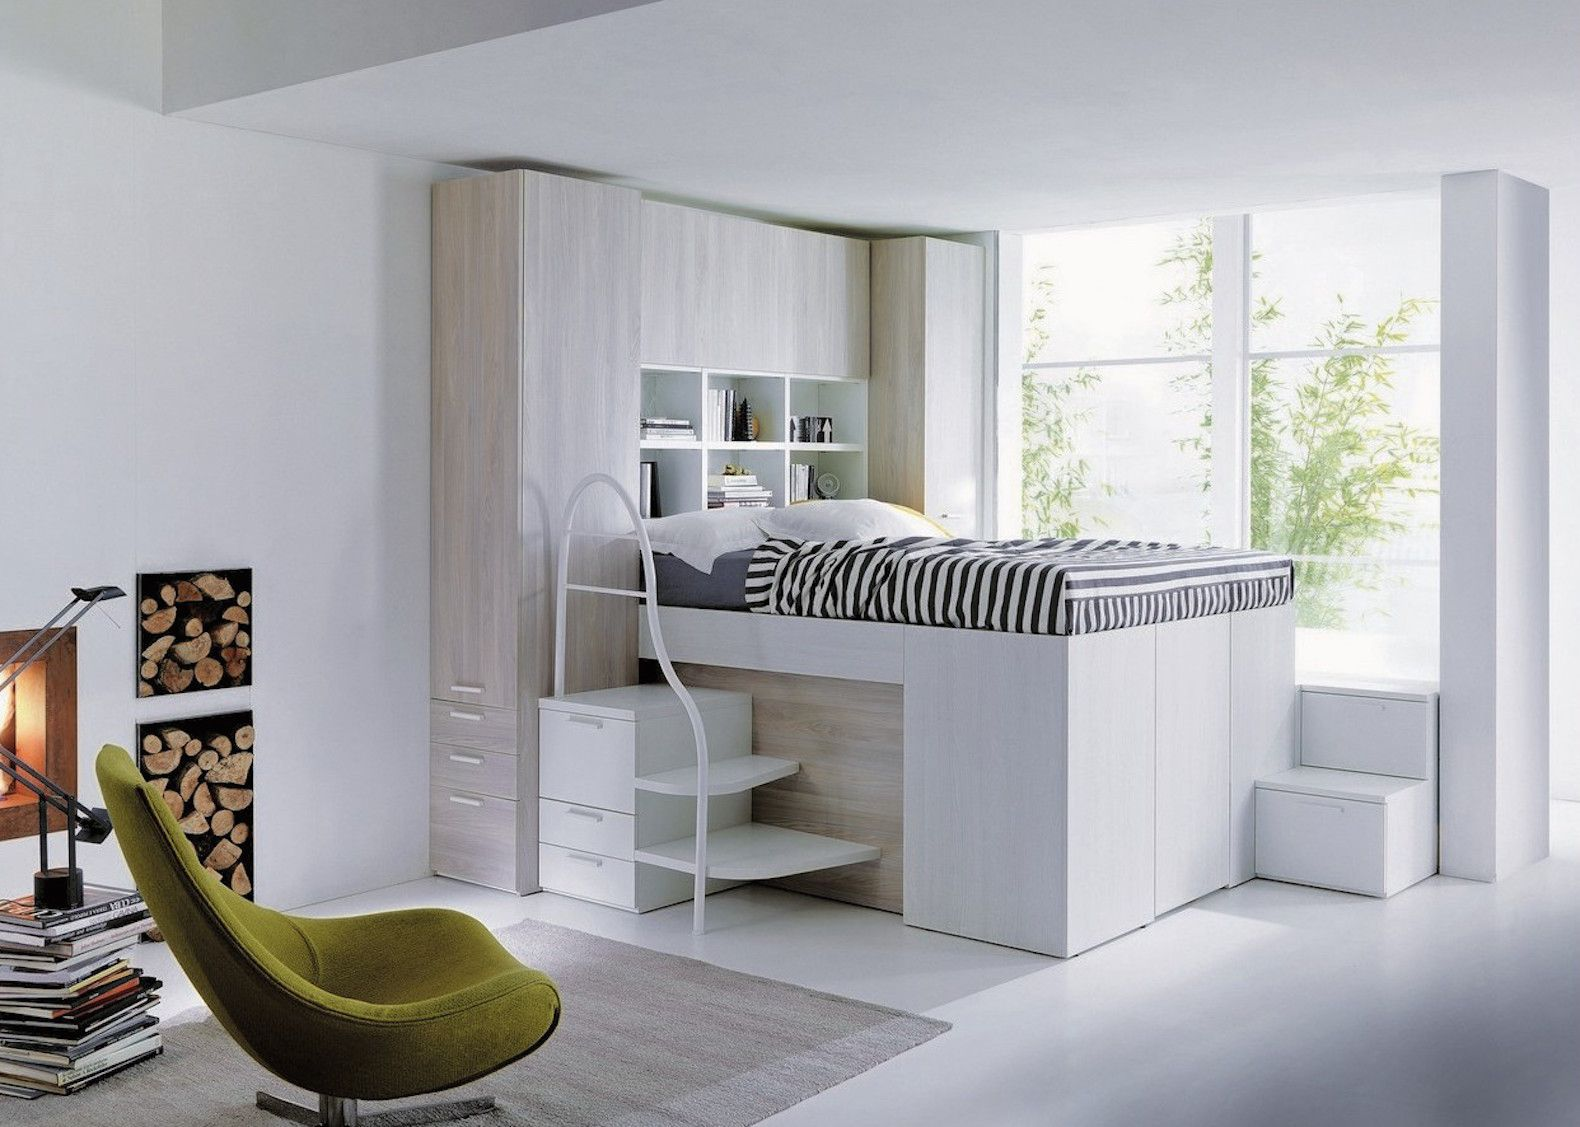 Smart Space Saving Bed Hides A Walk In Closet Underneath Space Saving Beds Small Room Bedroom Loft Spaces